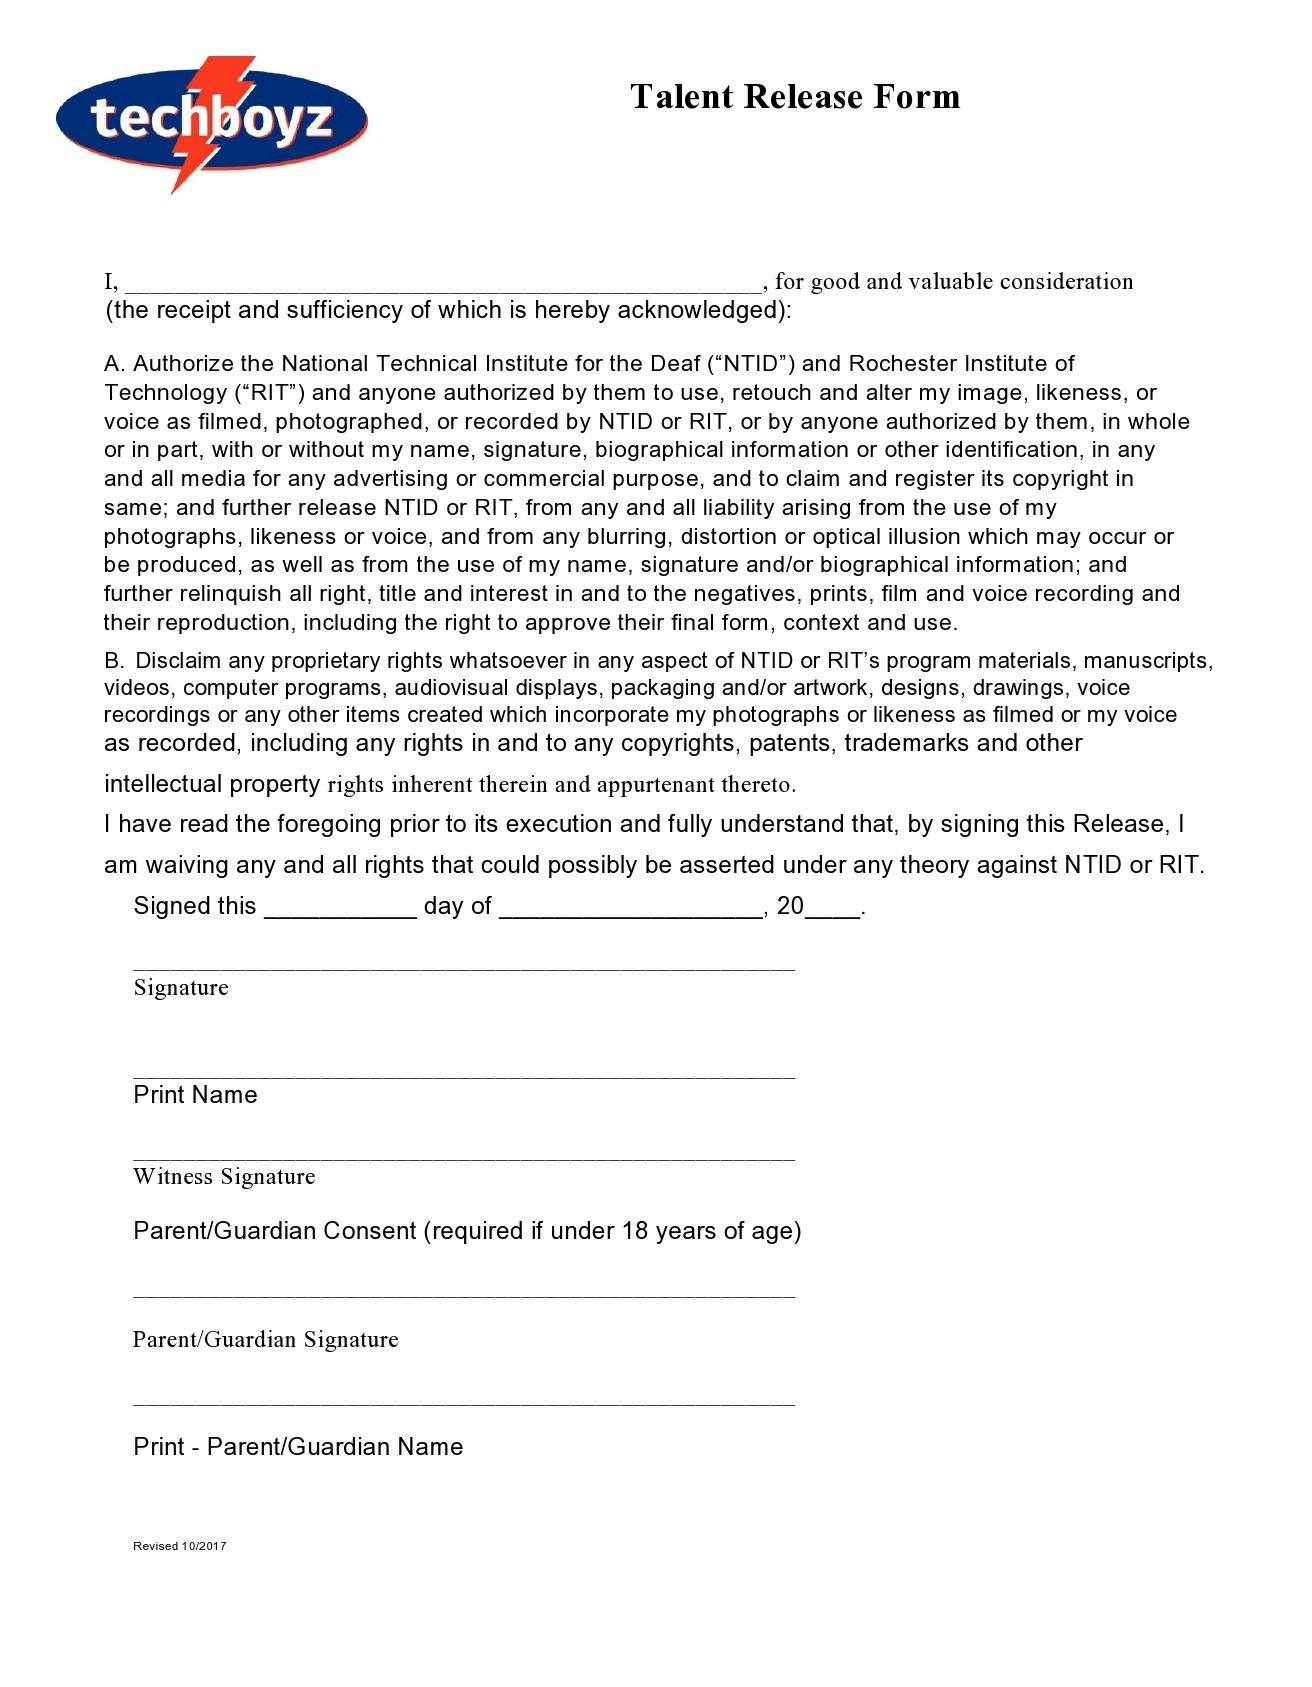 Free talent release form 36